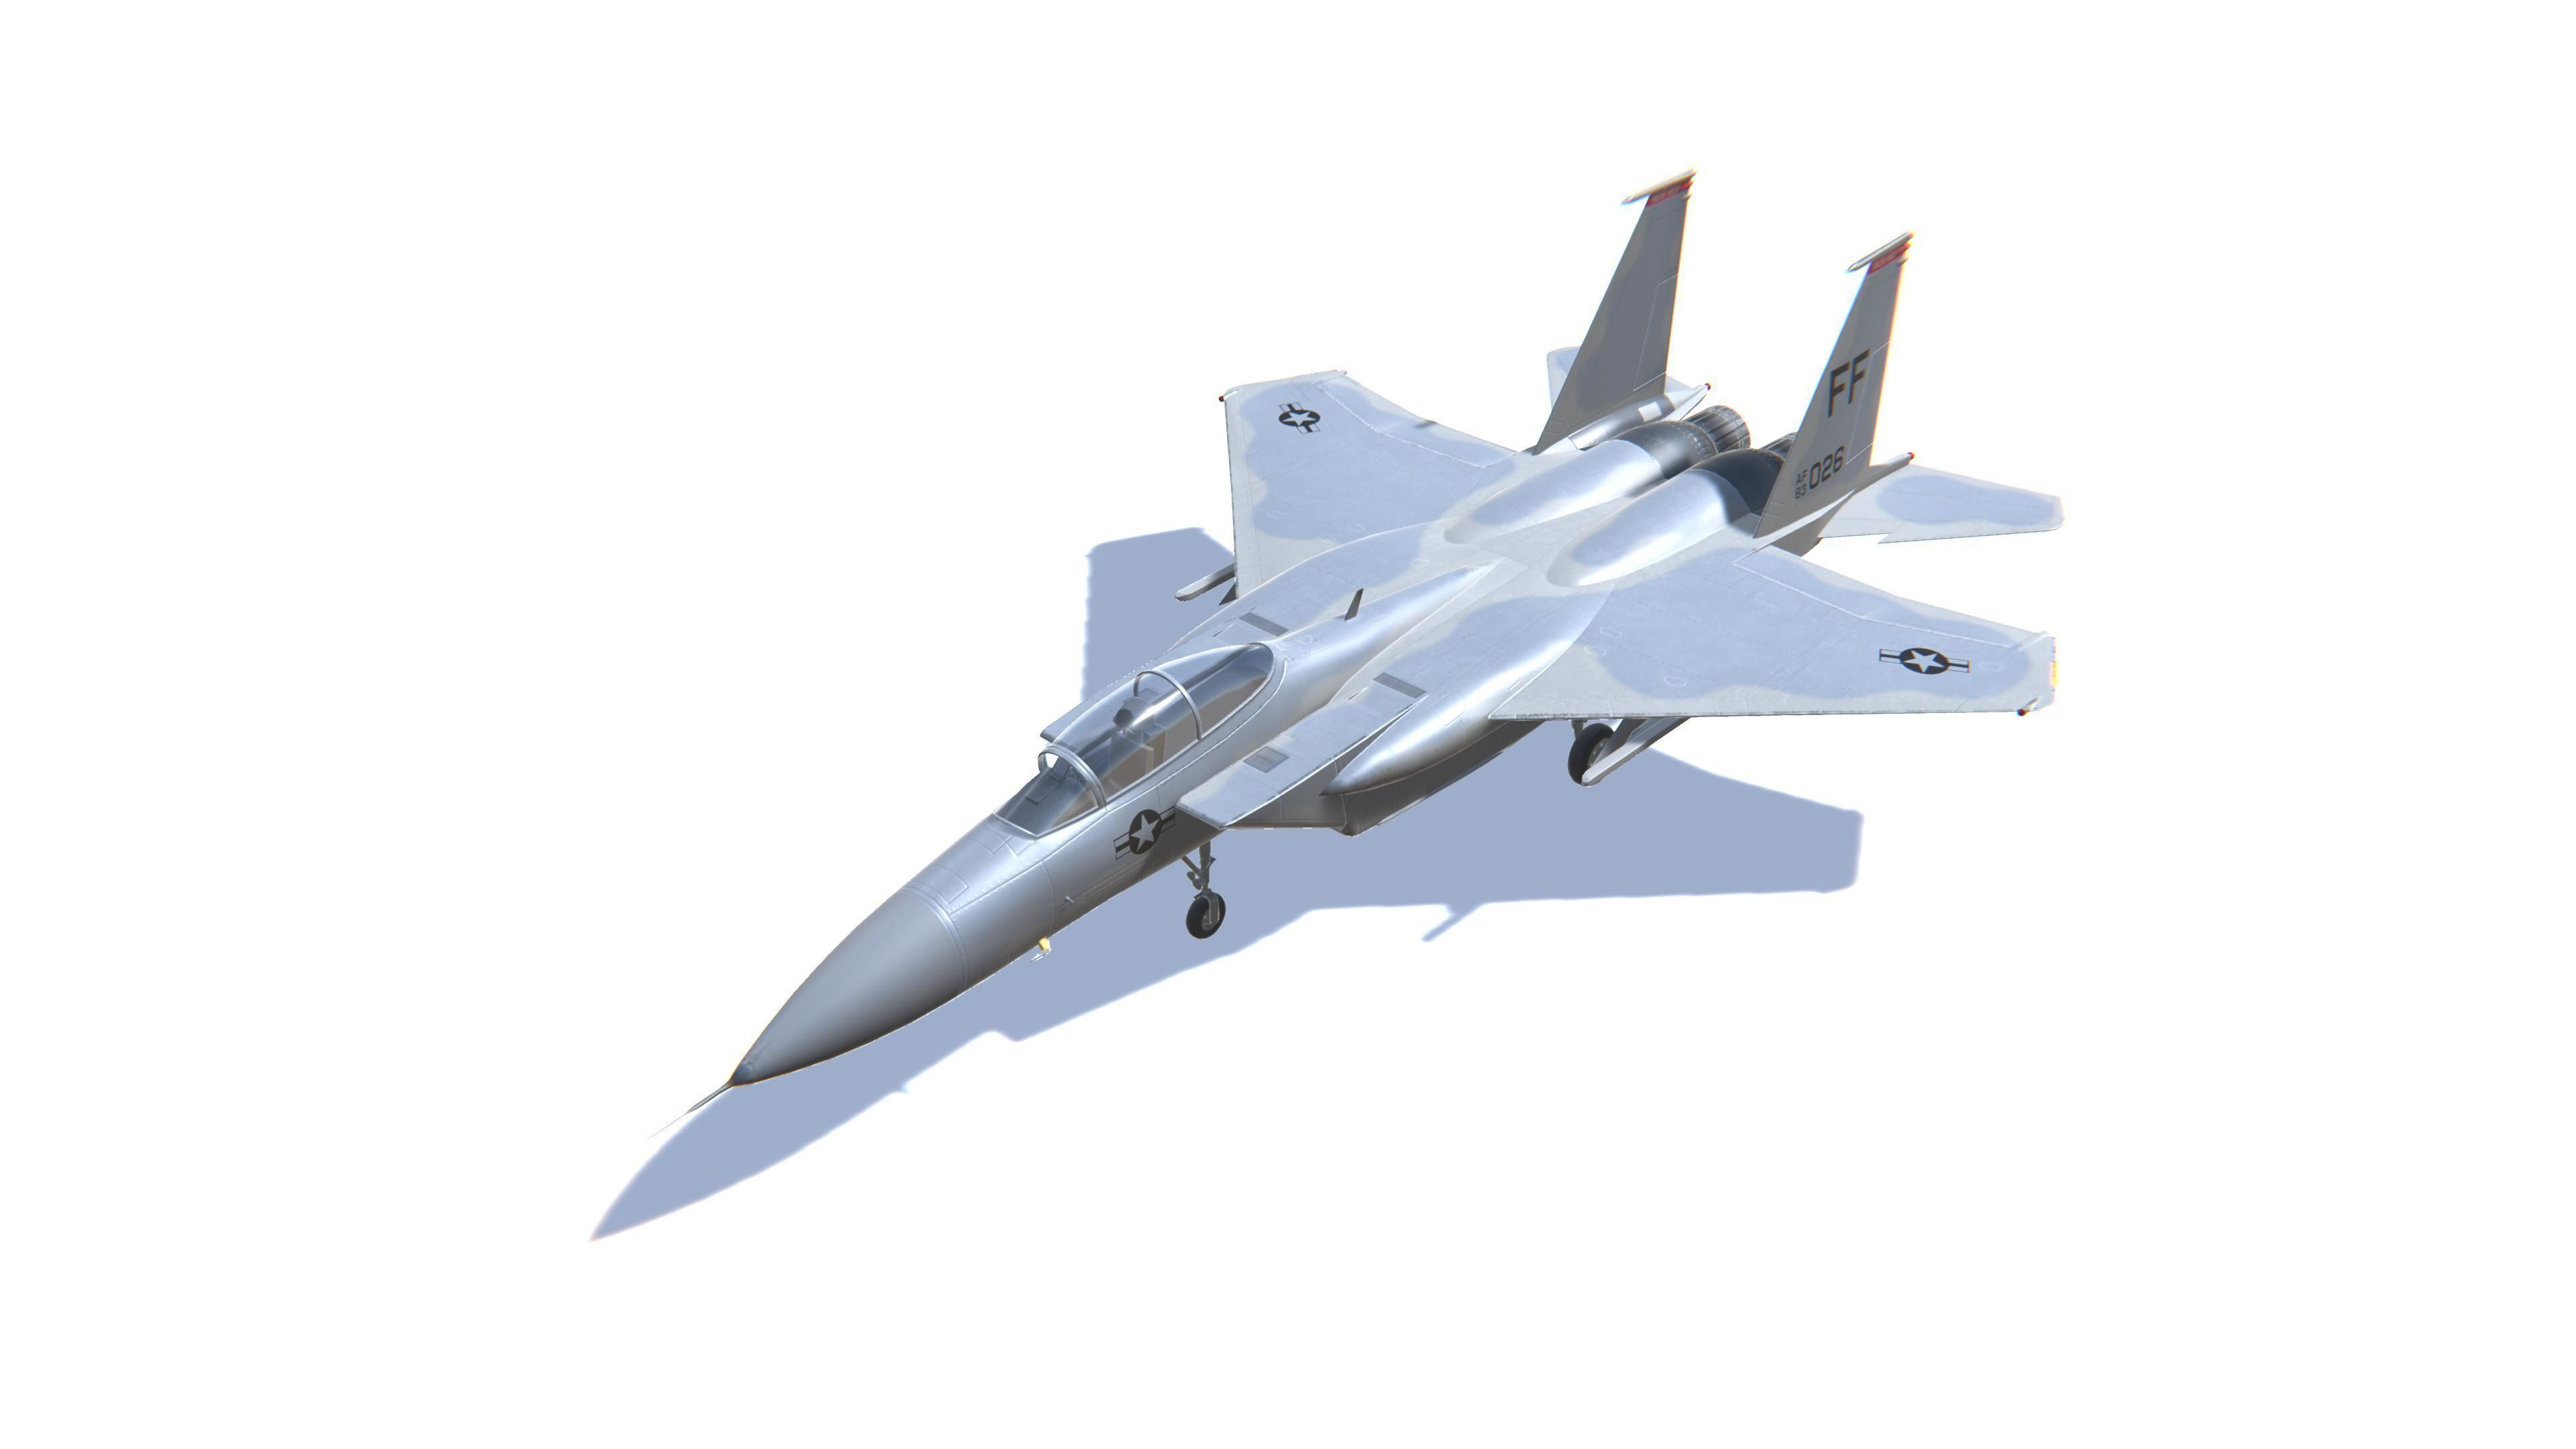 F-15 Eagle Jet Fighter Aircraft